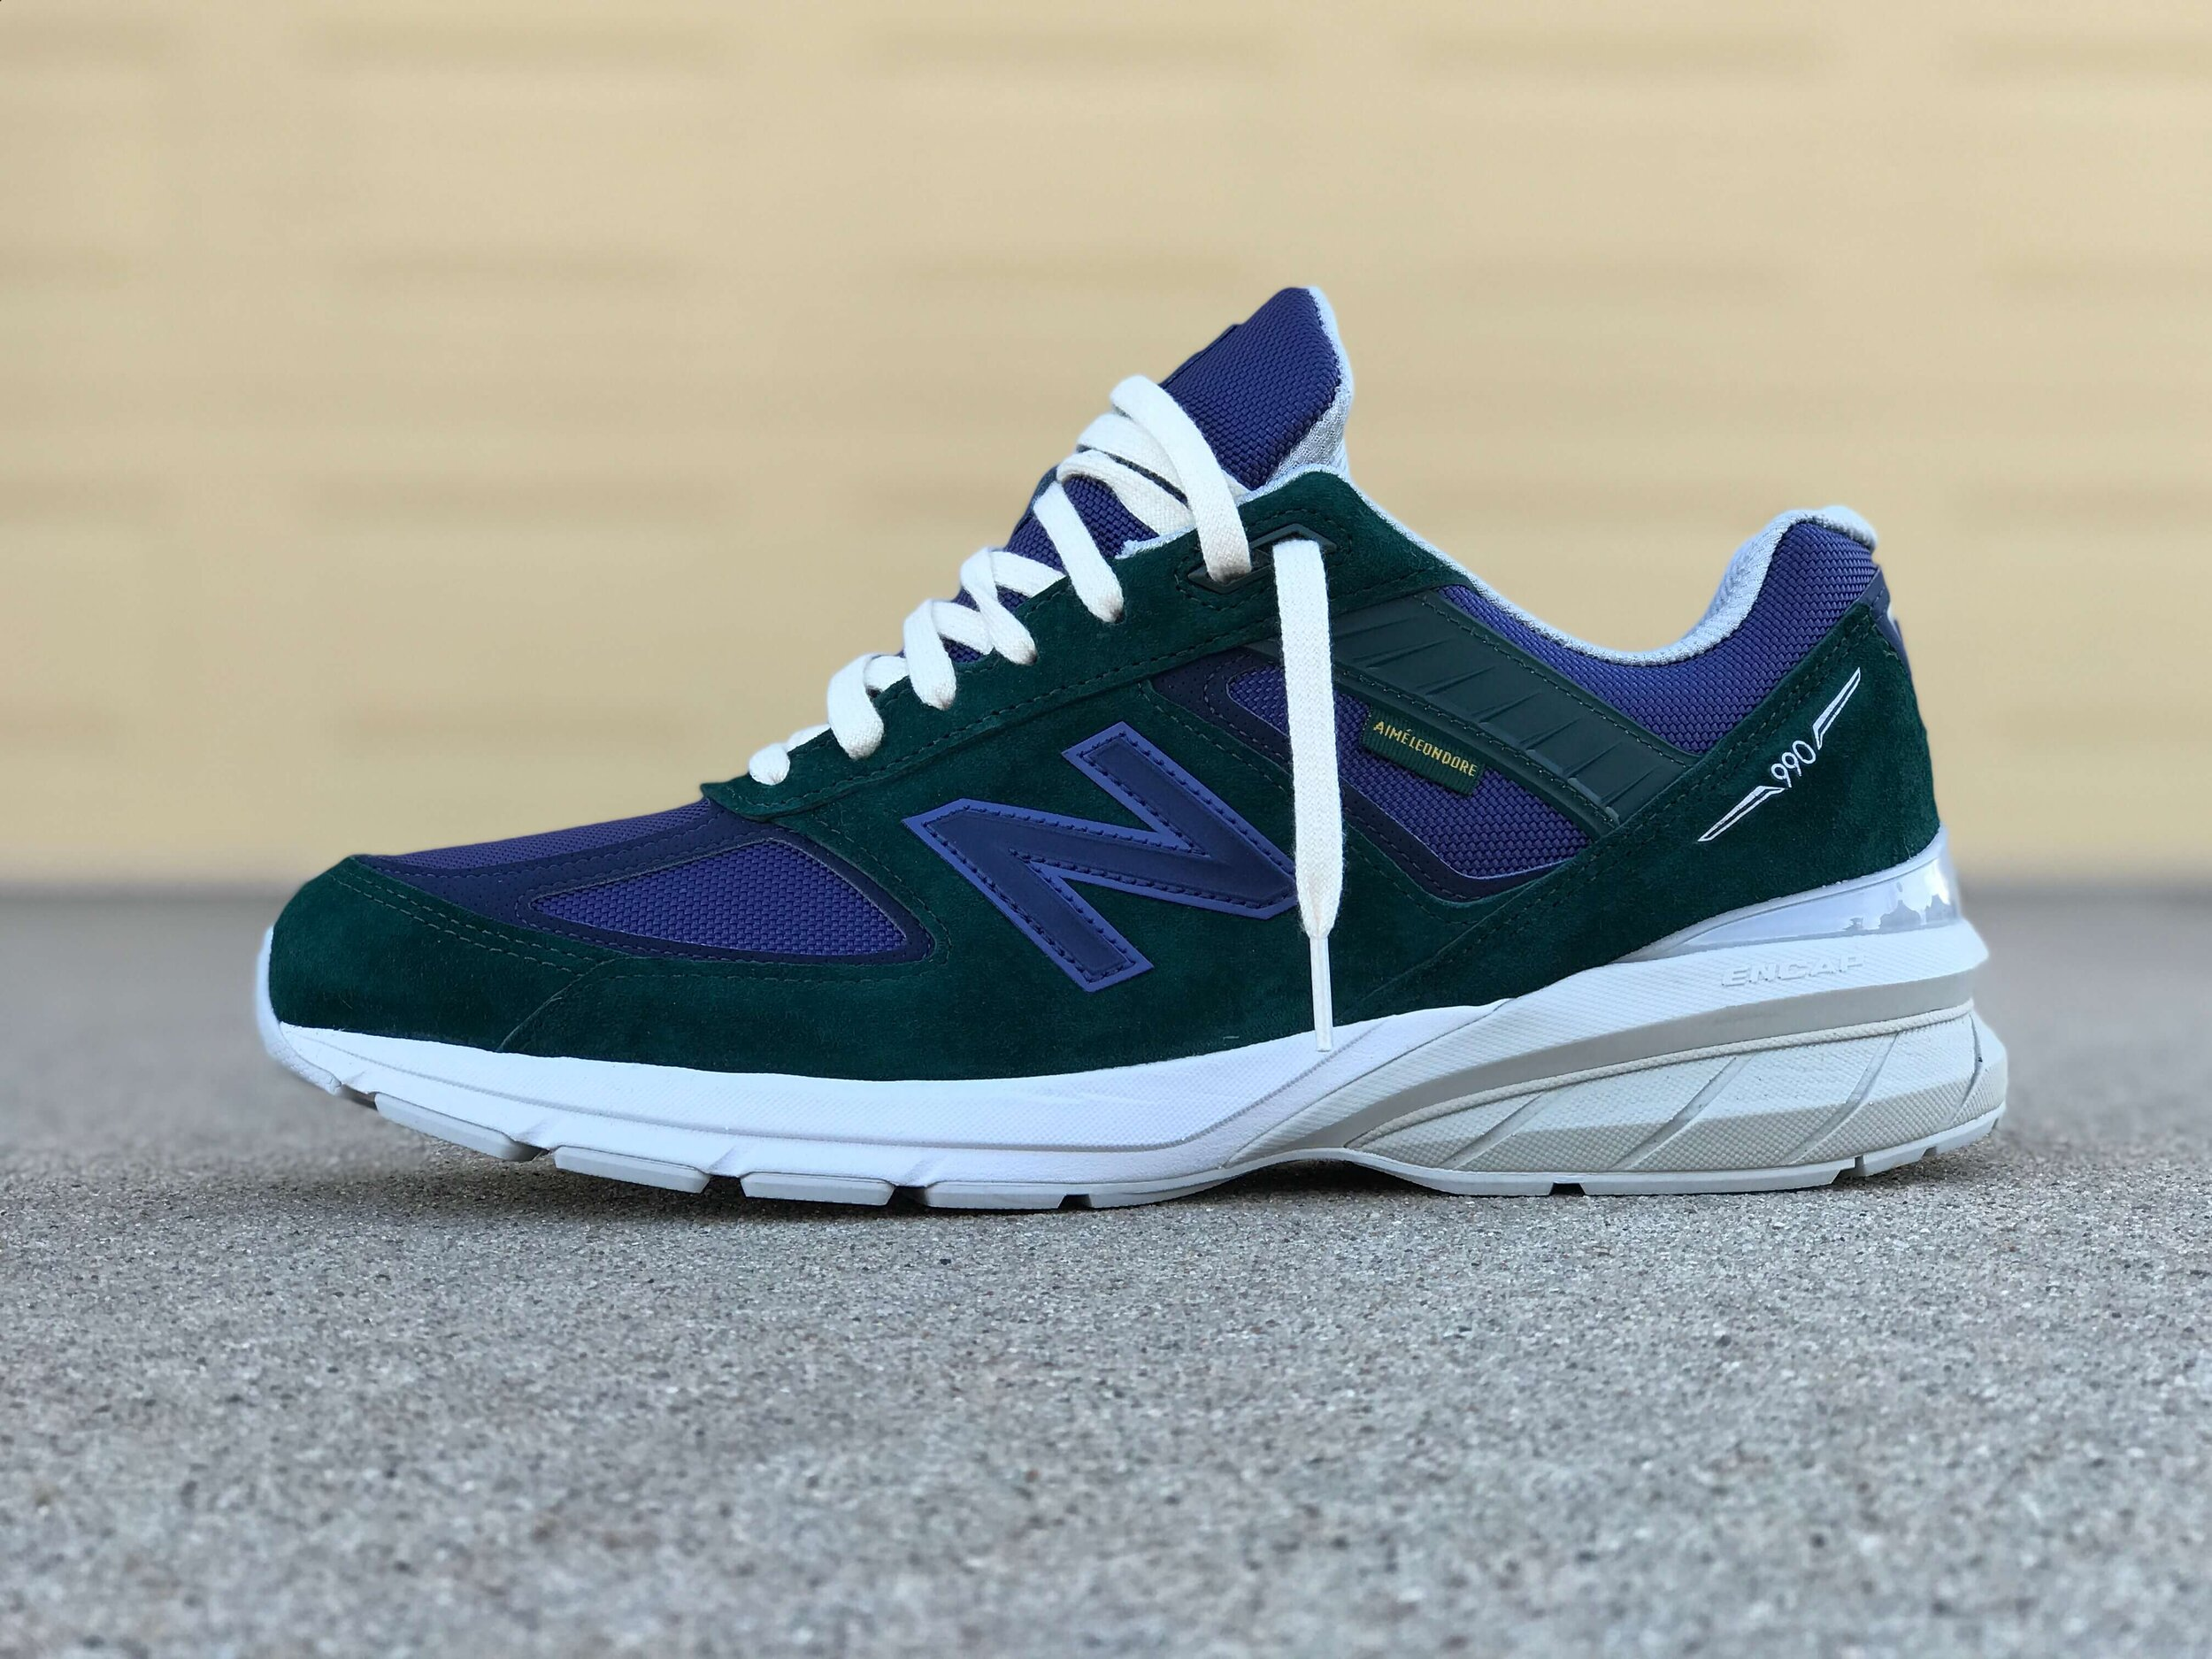 Aime Leon Dore x New Balance 990v5 [Must Watch Unboxing]